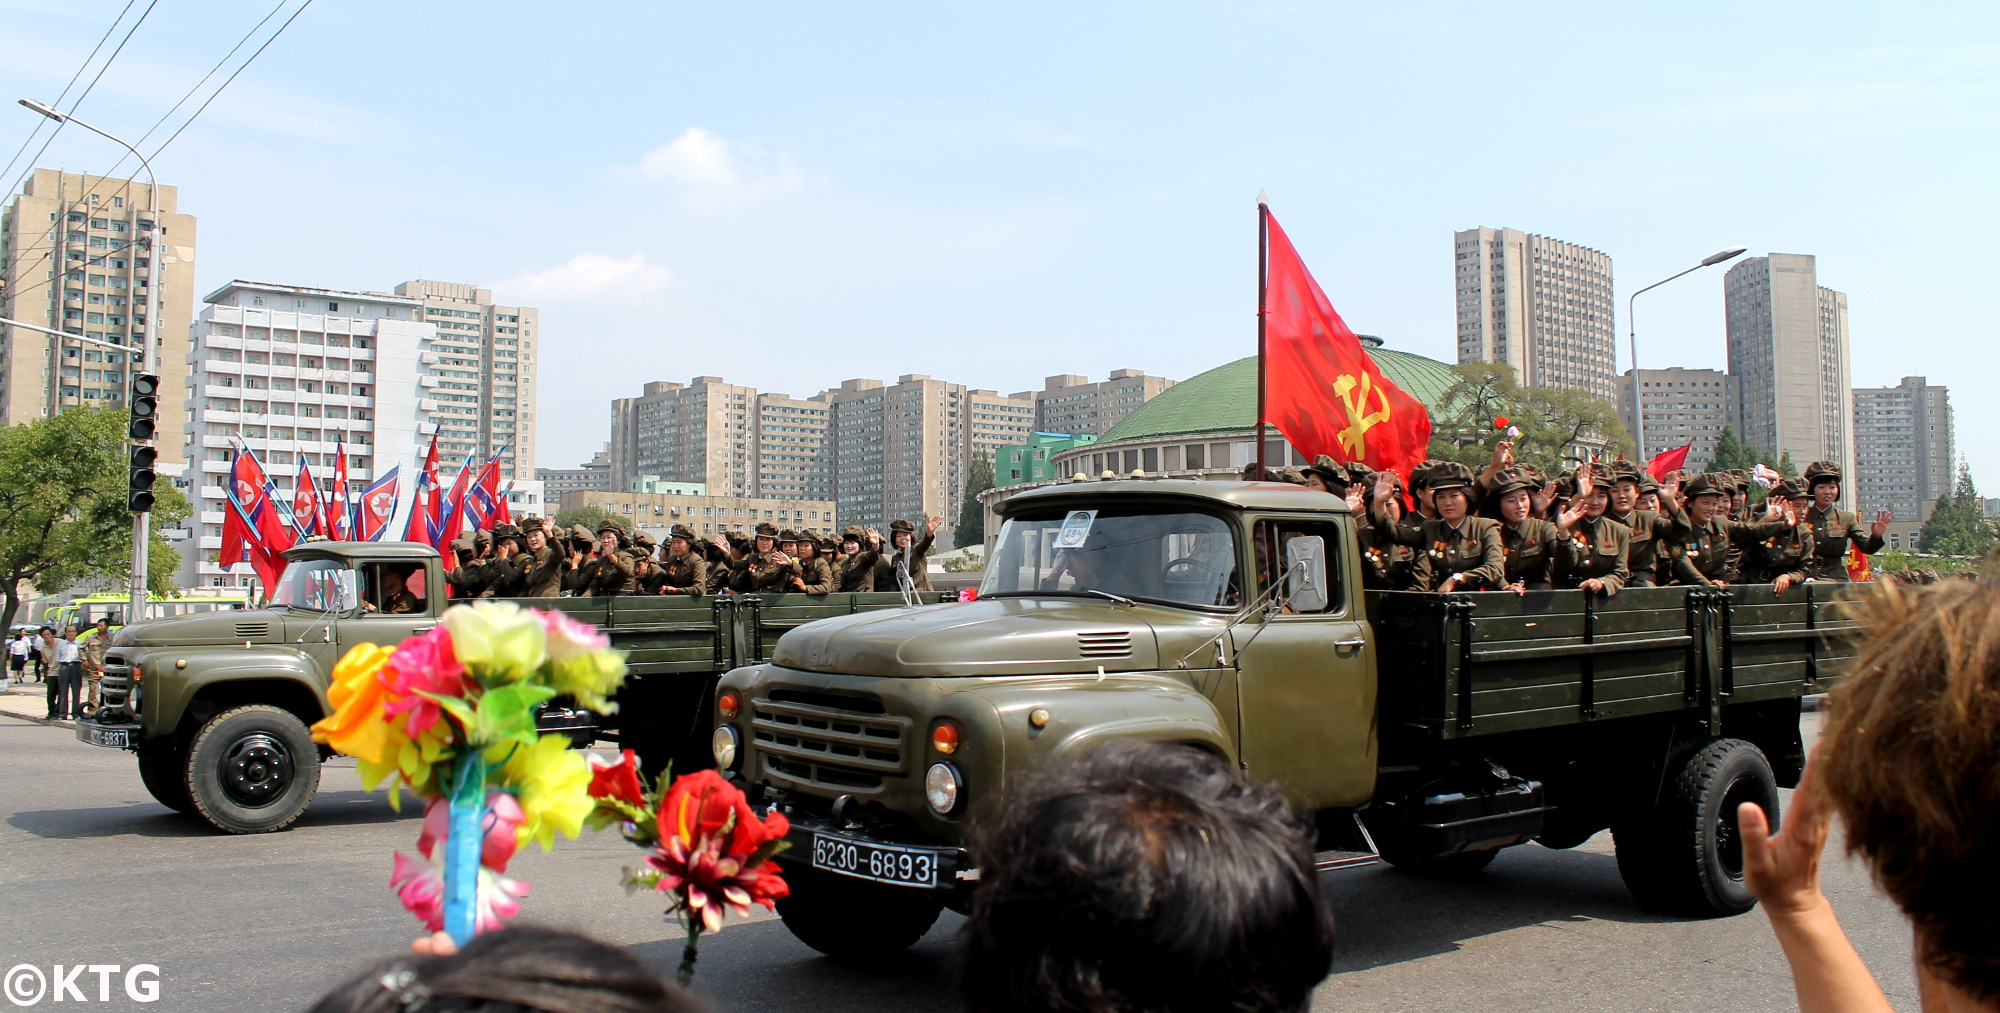 North Korean miitary trucks on 9.9 National Day in Pyongyang, capital city of the DPRK